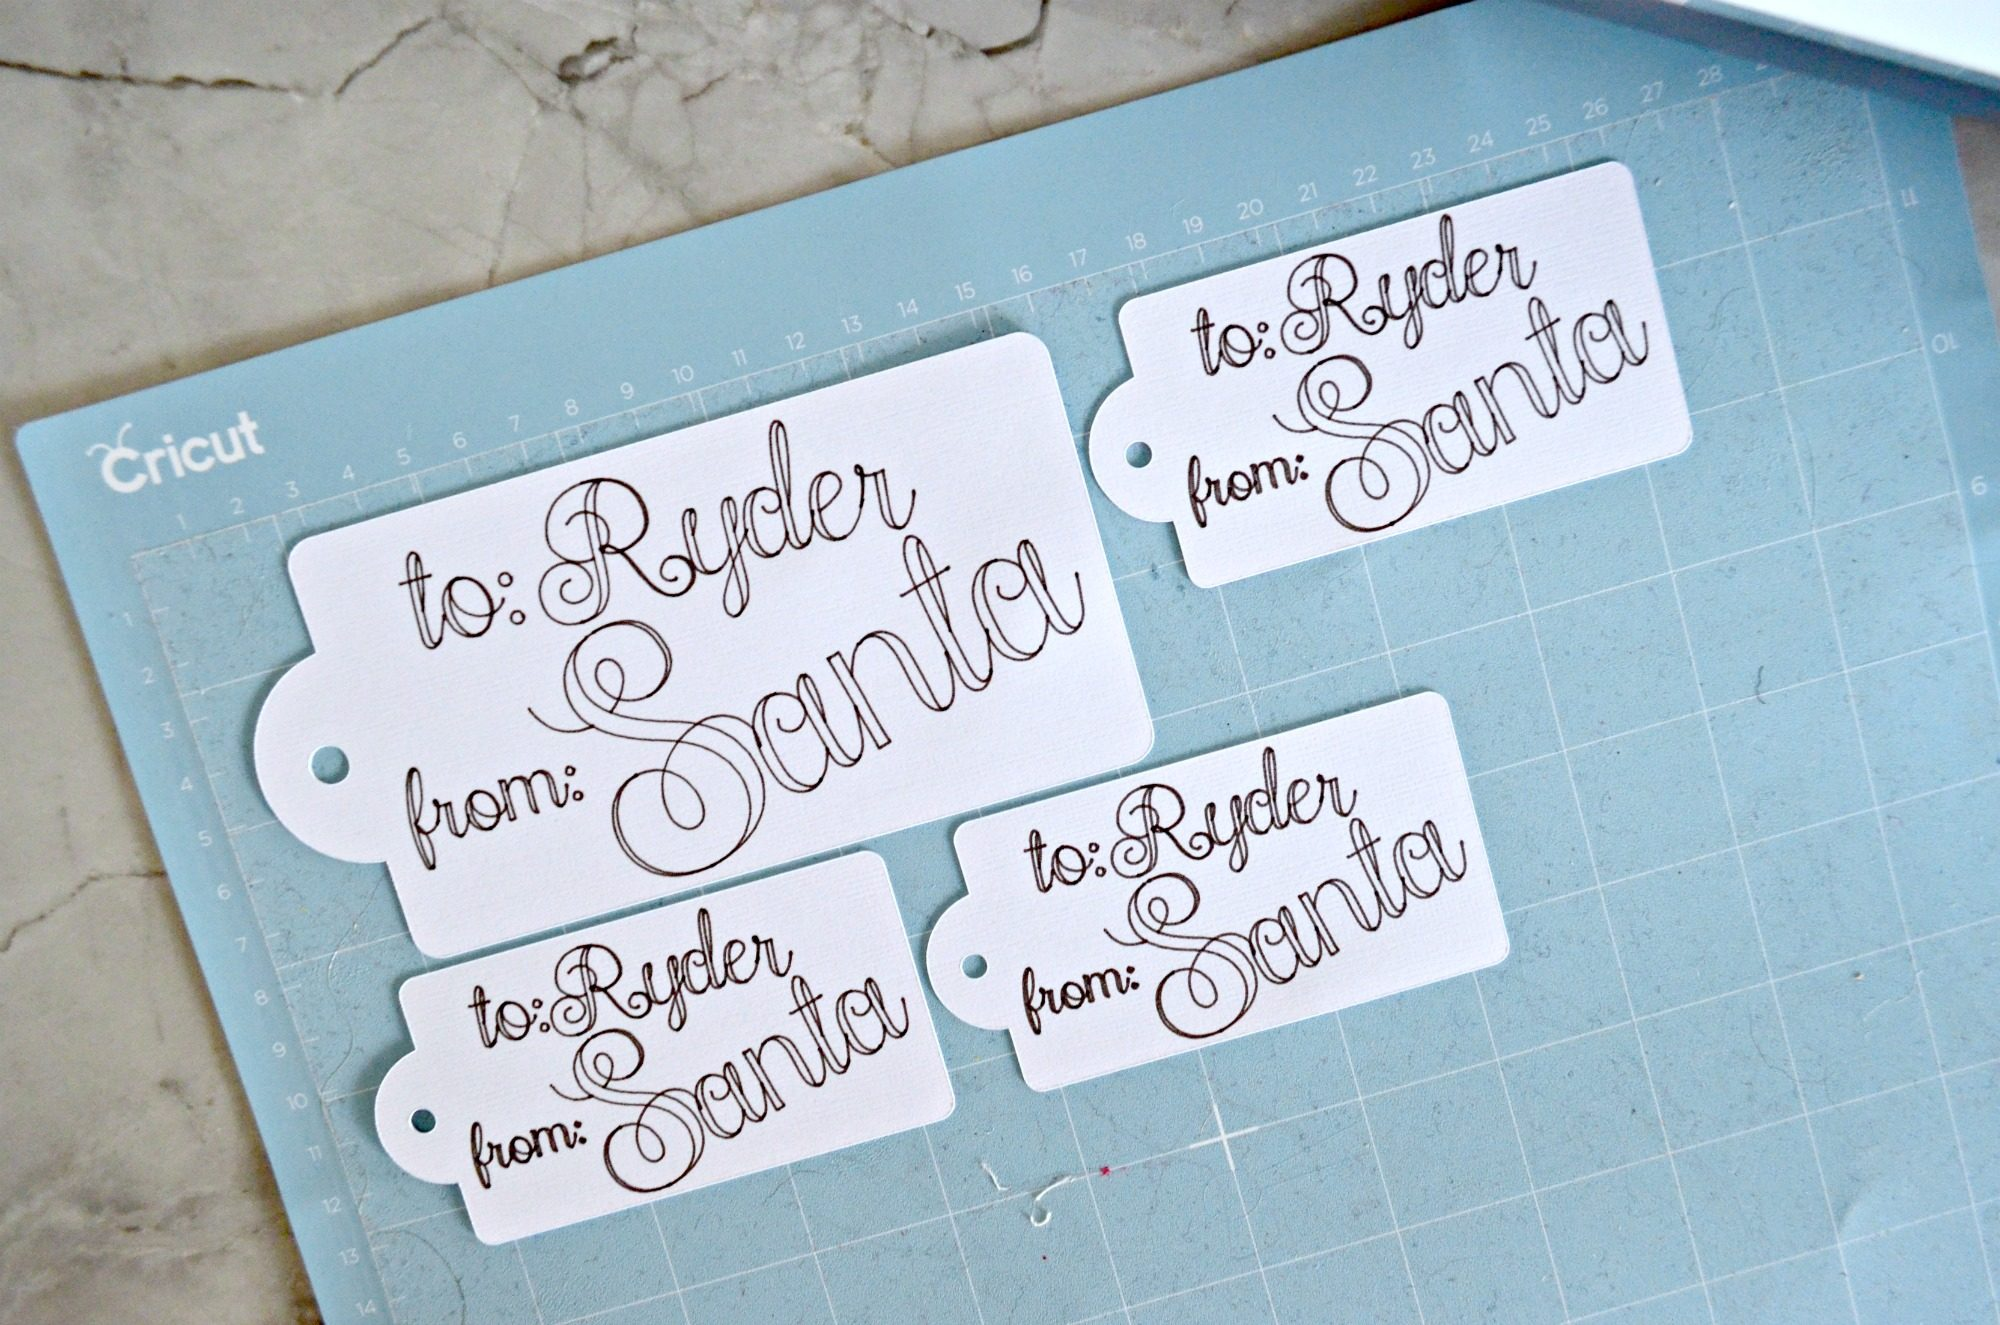 DIY Handwritten Santa Gift Tags on Cricut Mat